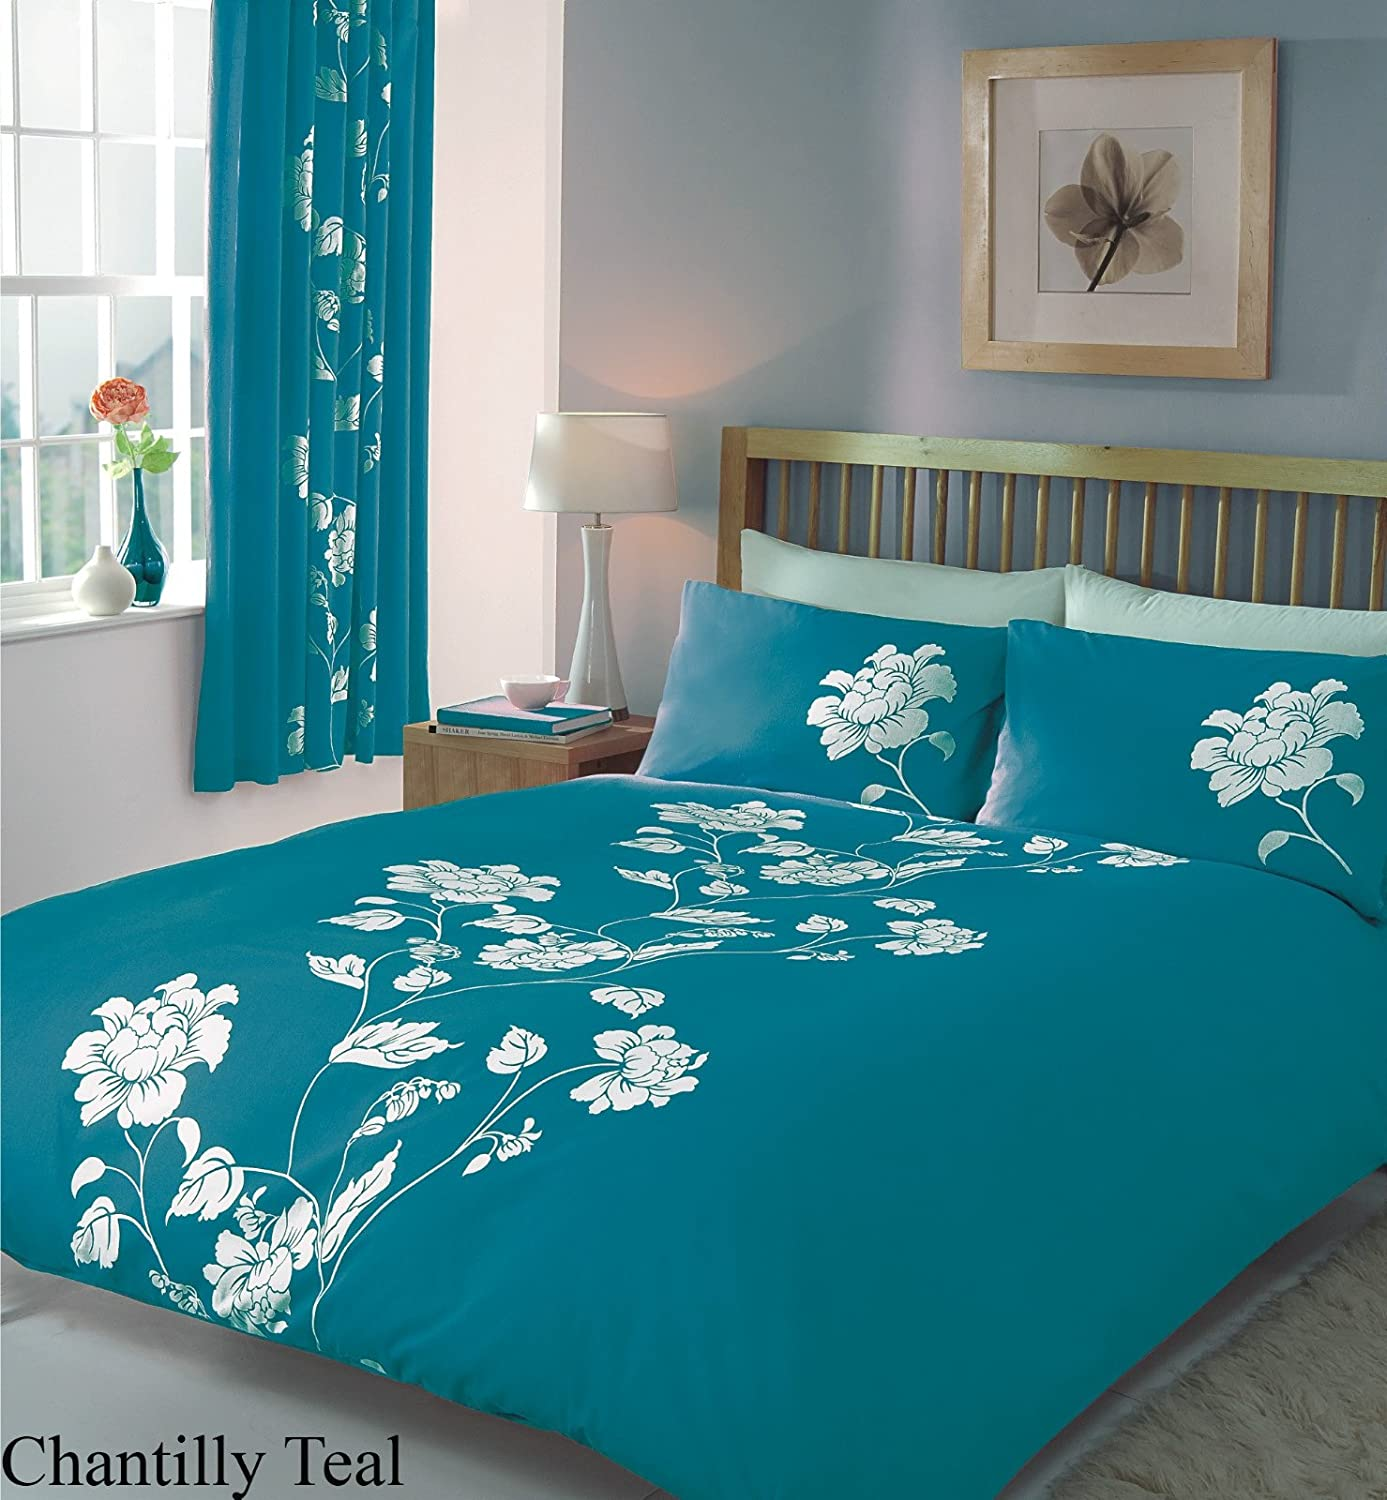 duvet space myspace cover your my colours set yourspace teal double